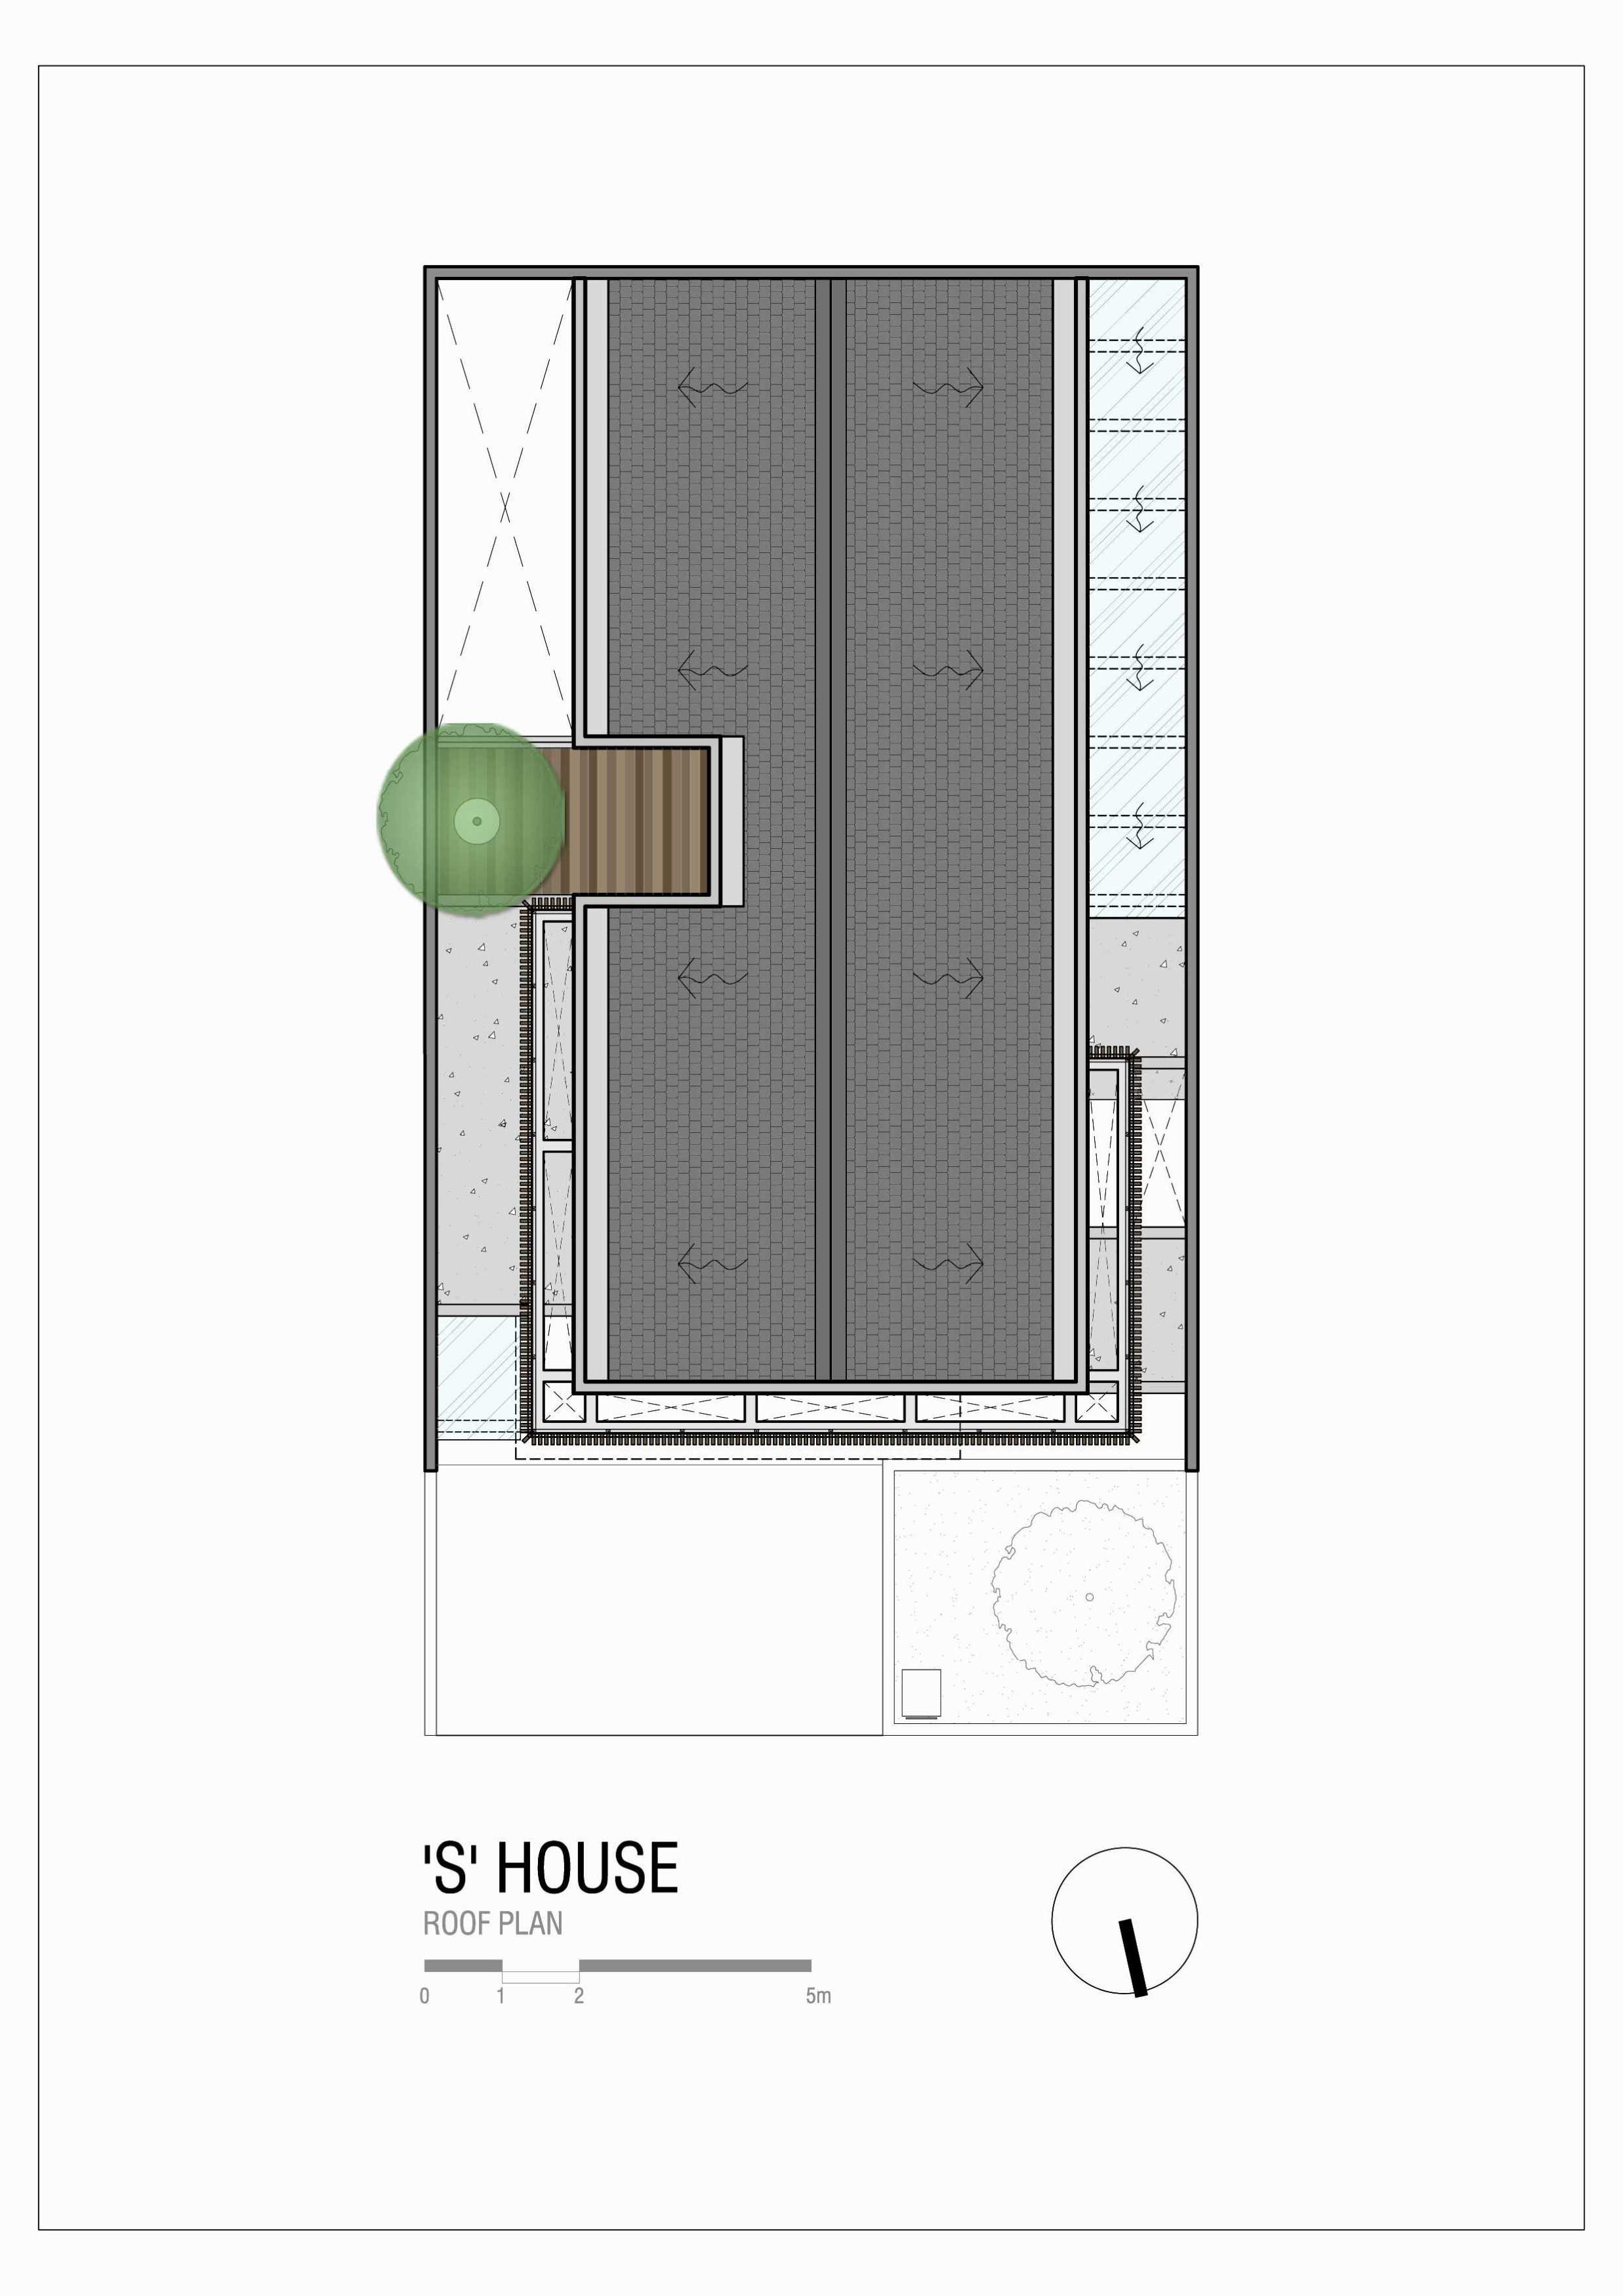 """Simple Projects Architecture """"s"""" House Pakuwon Indah, Surabaya - Indonesia Pakuwon Indah, Surabaya - Indonesia Shouseroof-Plan   45729"""